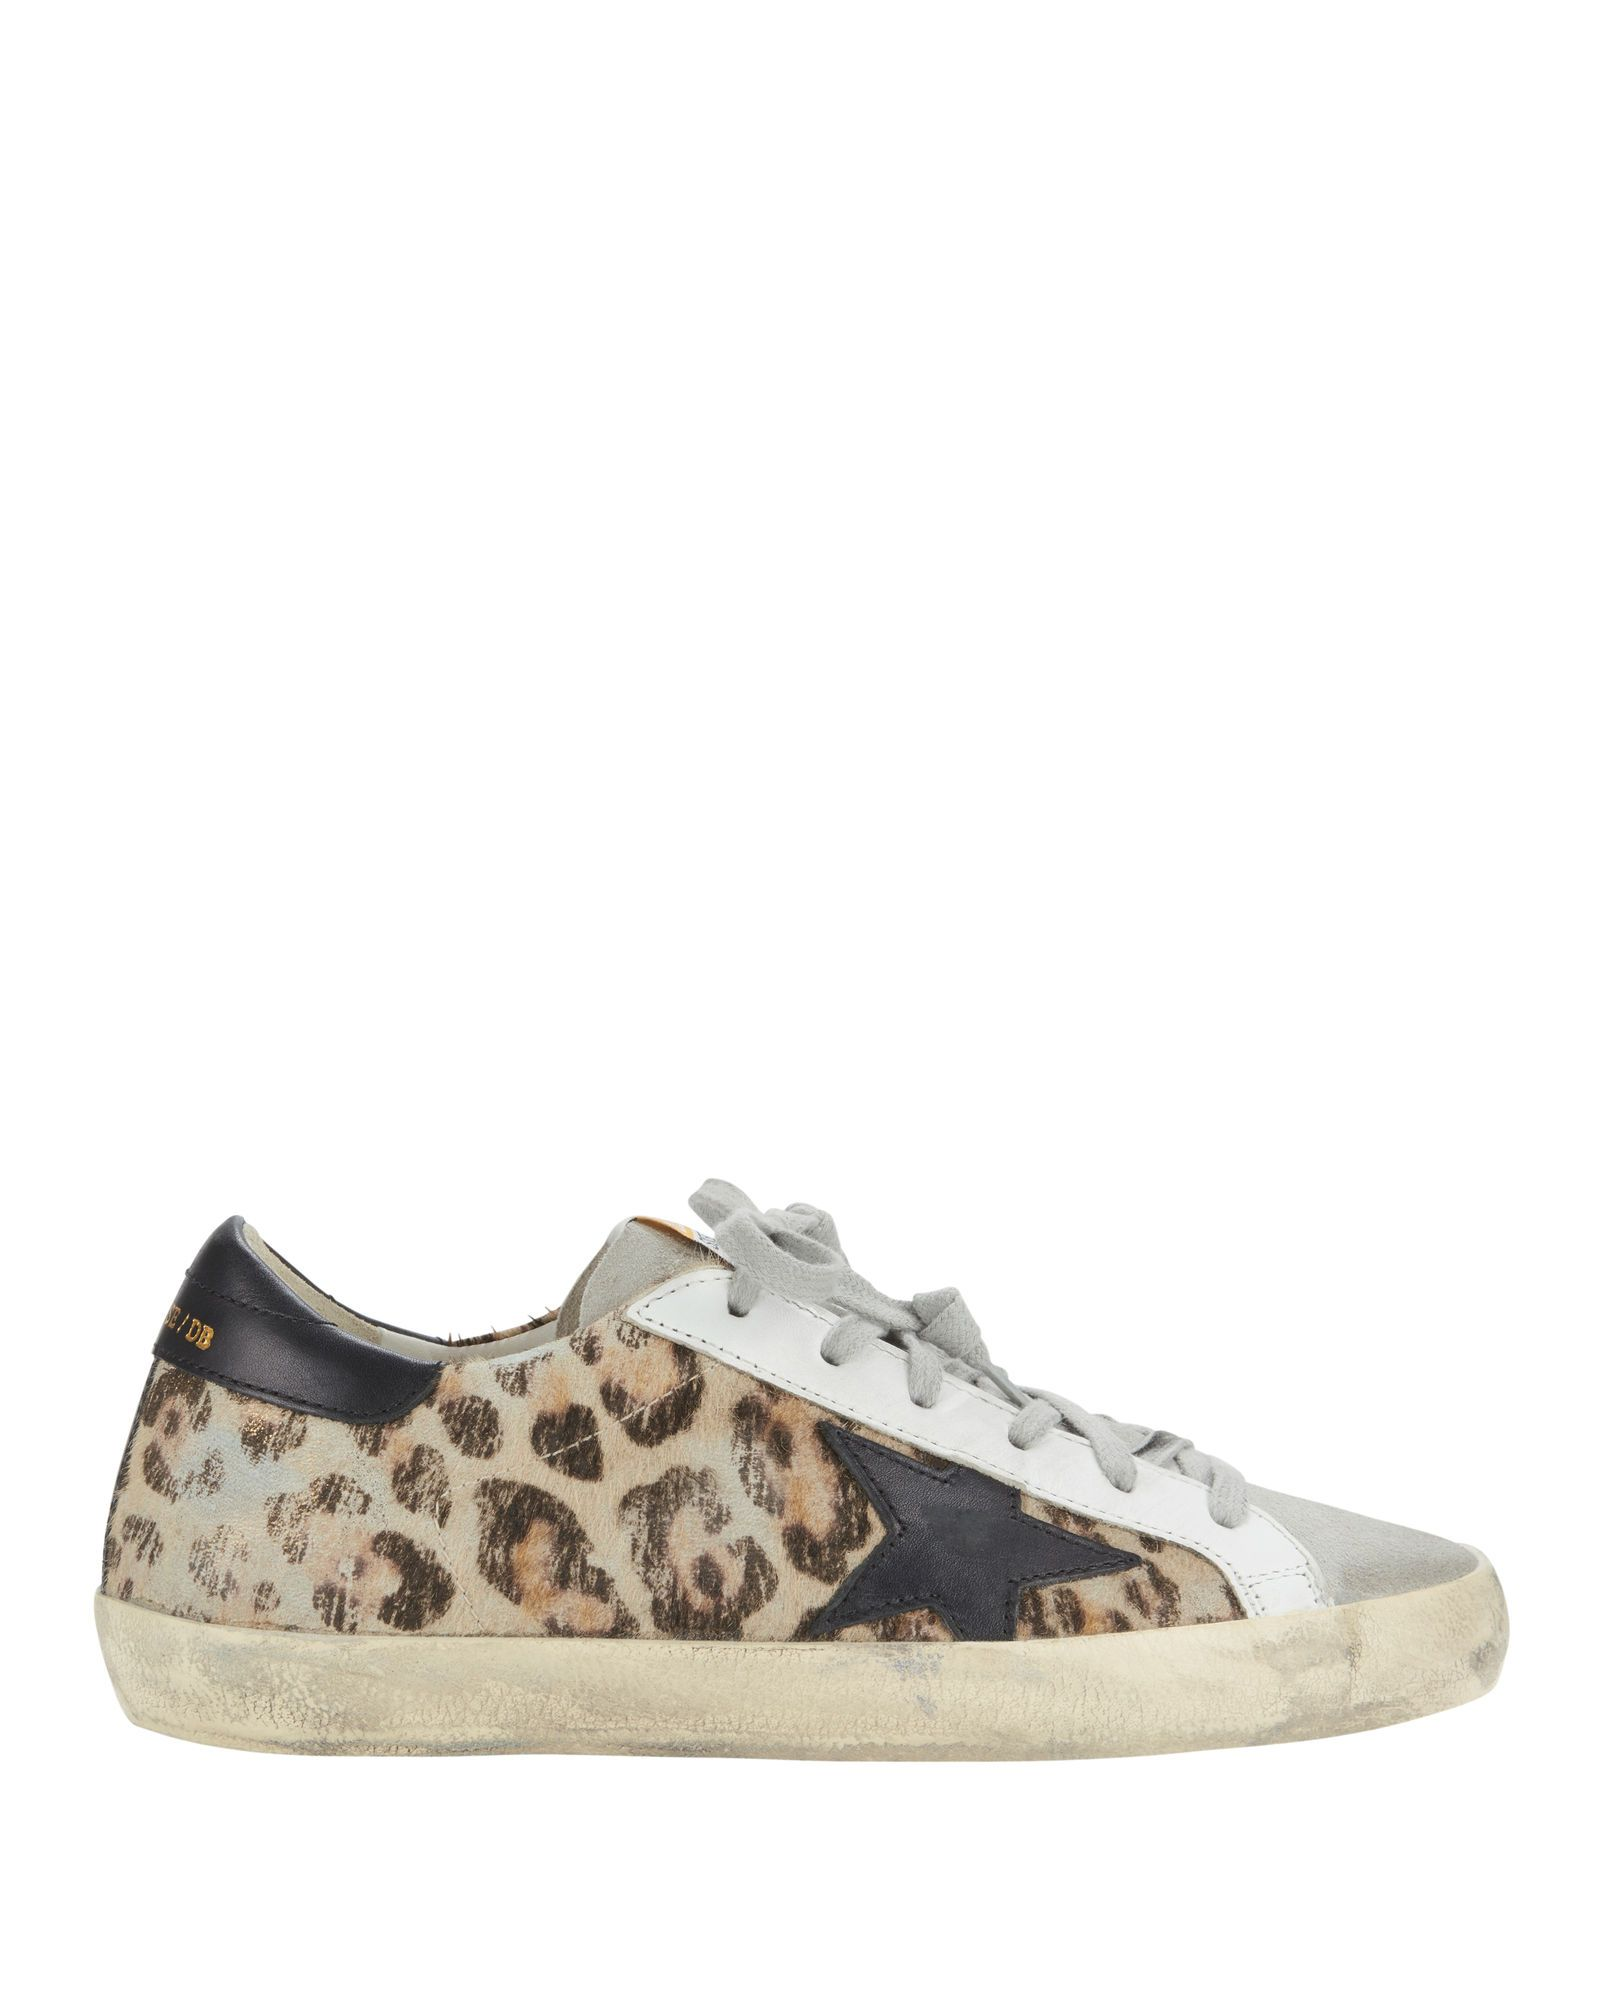 a1c5dc6768a00 GOLDEN GOOSE Superstar Snow Leopard Low-Top Sneakers.  goldengoose  shoes